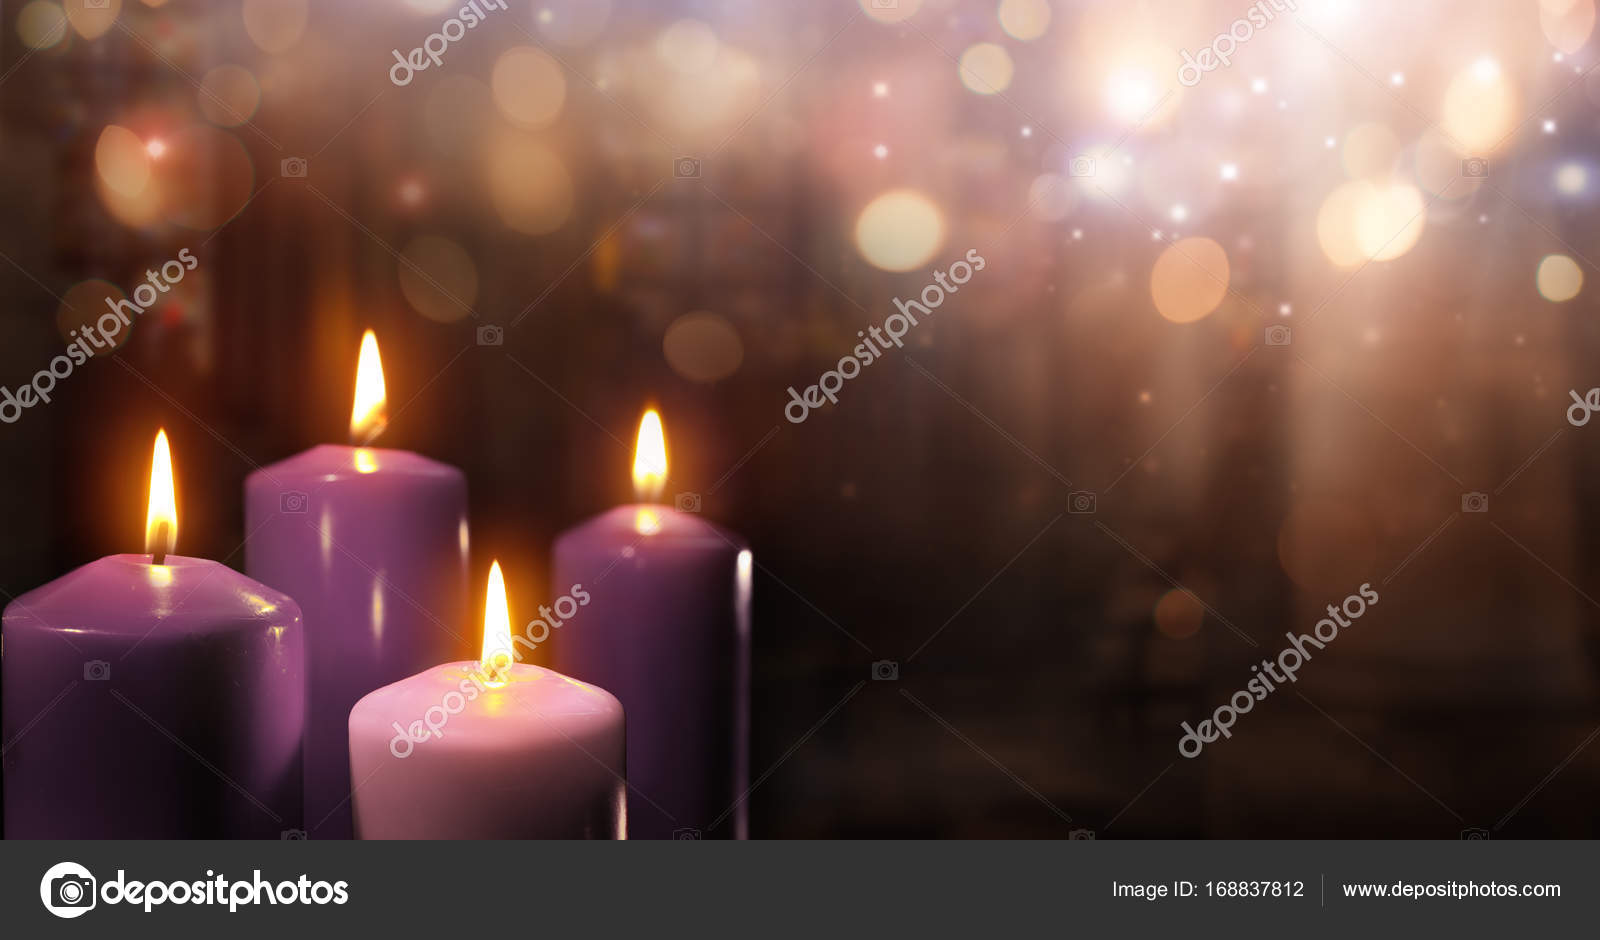 Advent candles in church three purple and one pink as a catholic advent candles in church three purple and one pink as a catholic symbol and bokeh lights photo by rfphoto buycottarizona Gallery